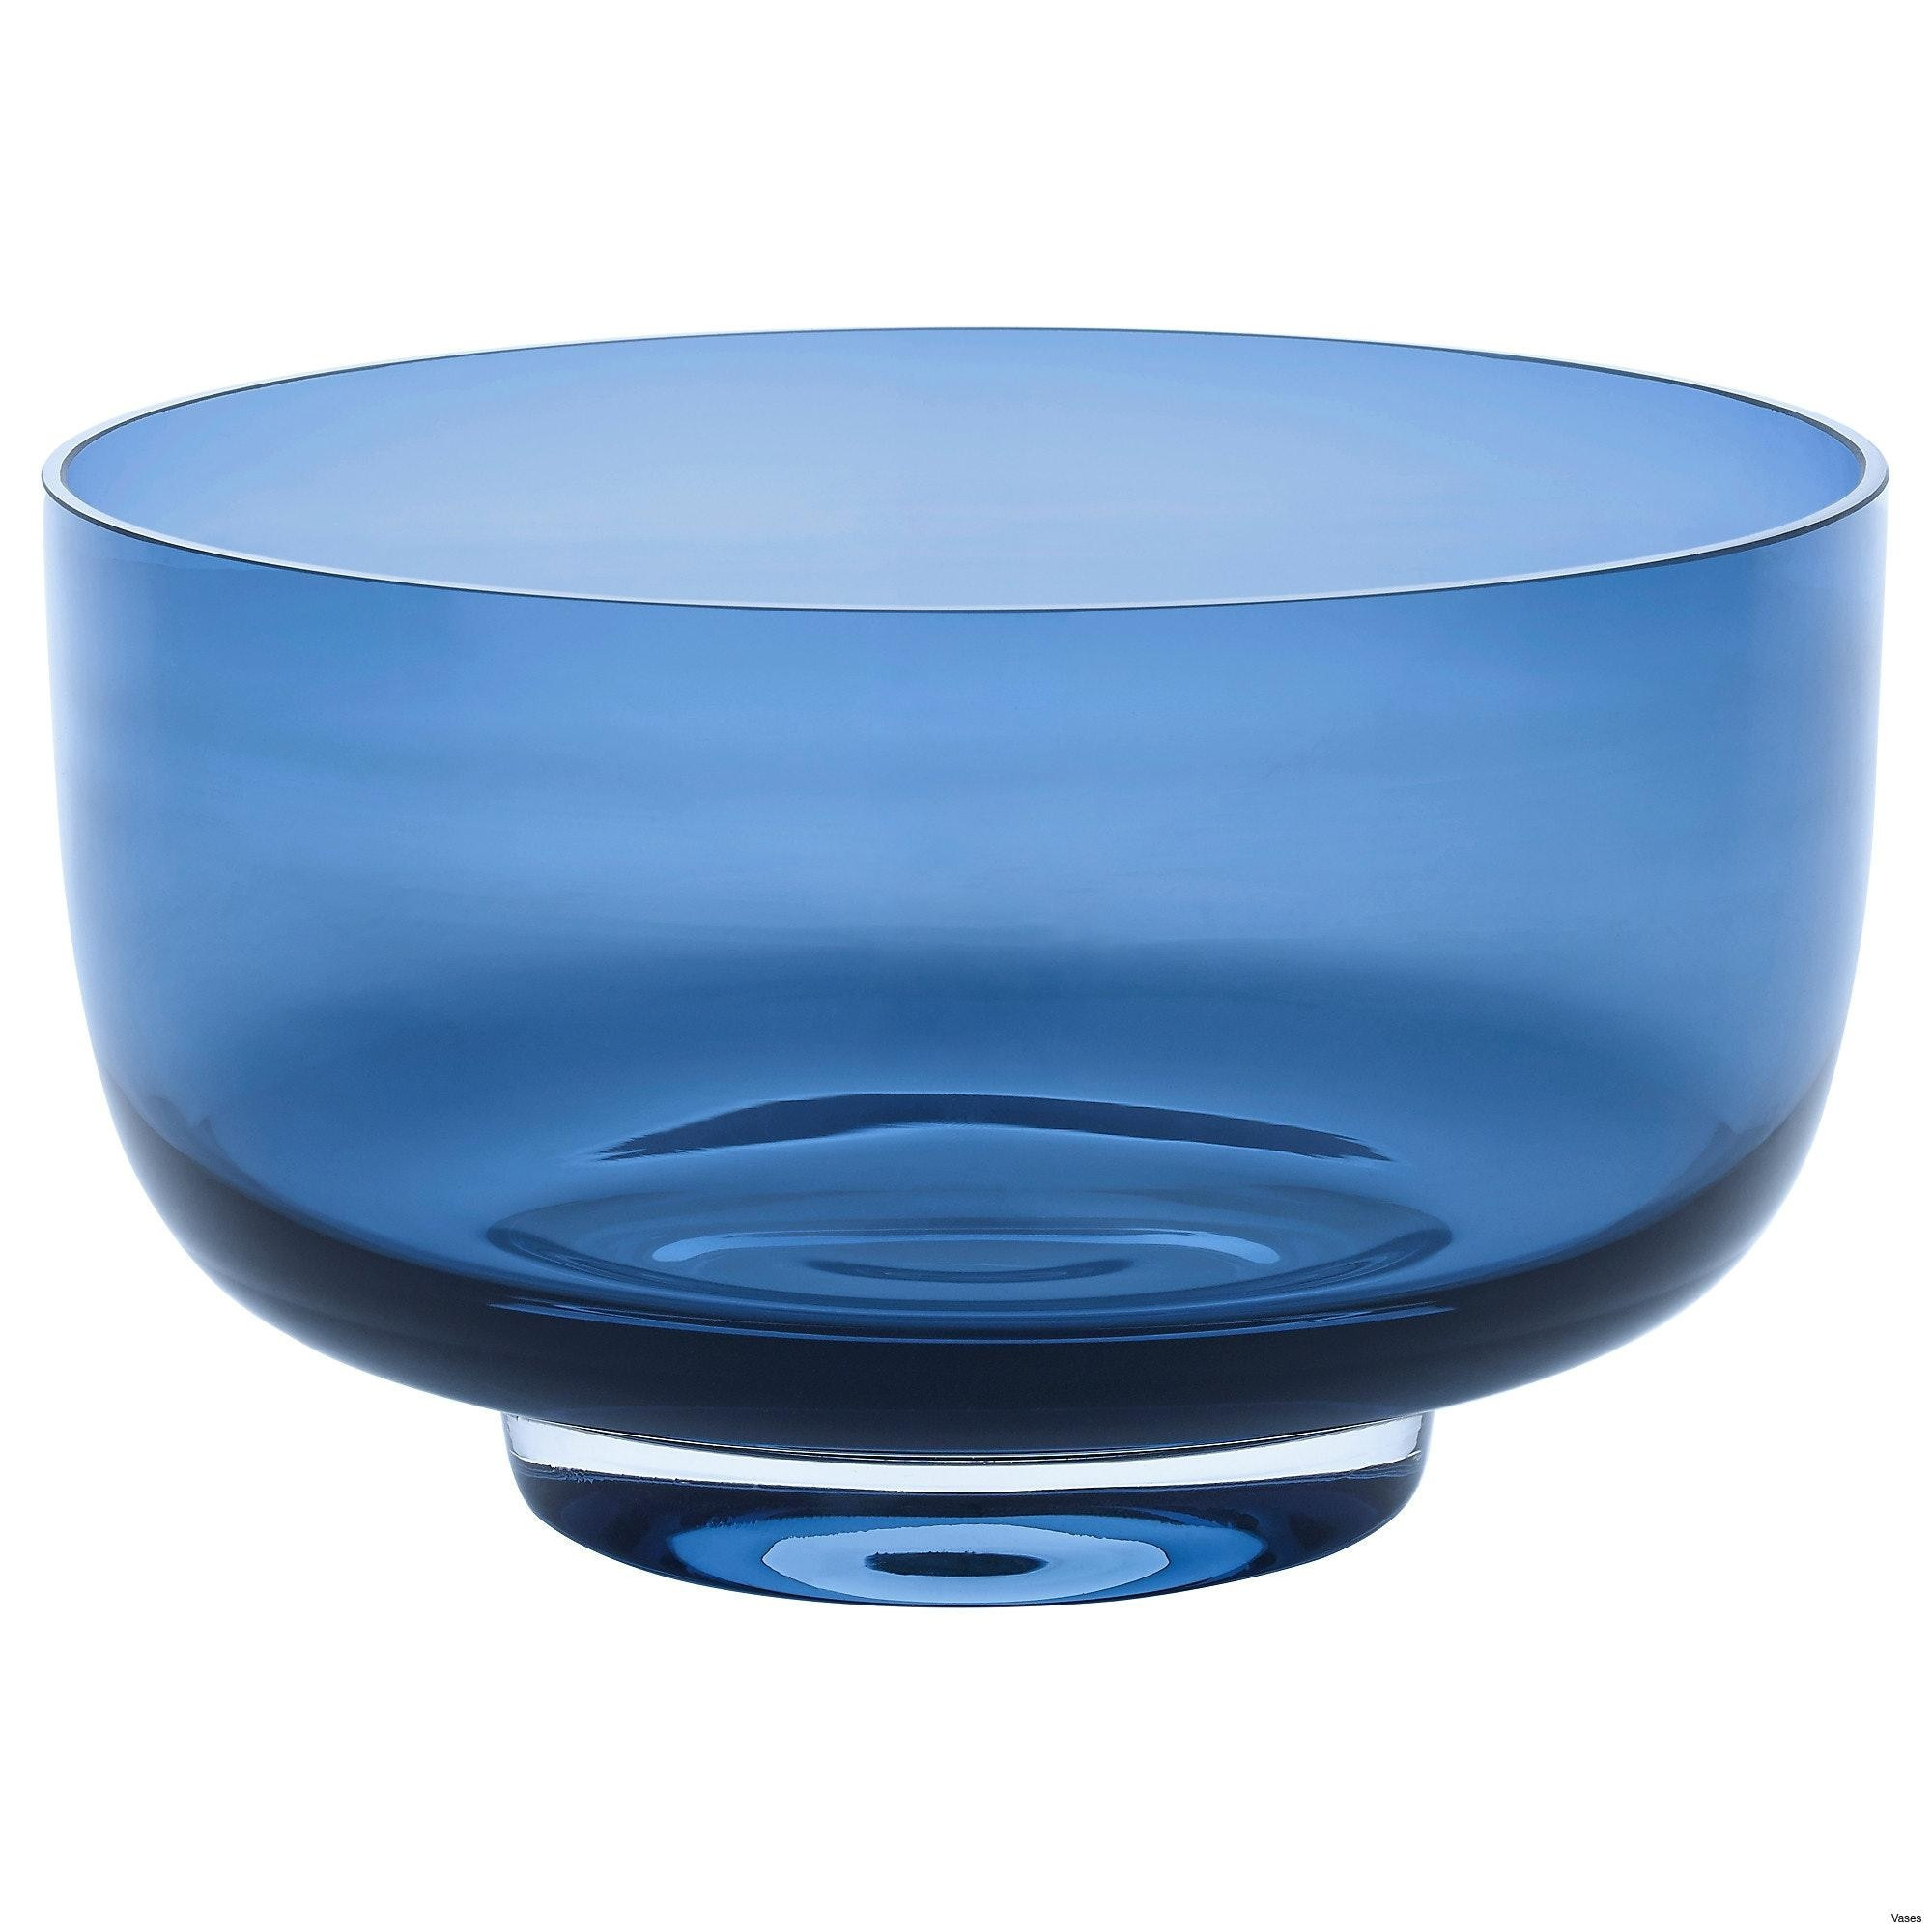 ming vases designs of white decorative bowl stock decorative glass bowl new living room with decorative glass bowl new living room ikea vases awesome pe s5h